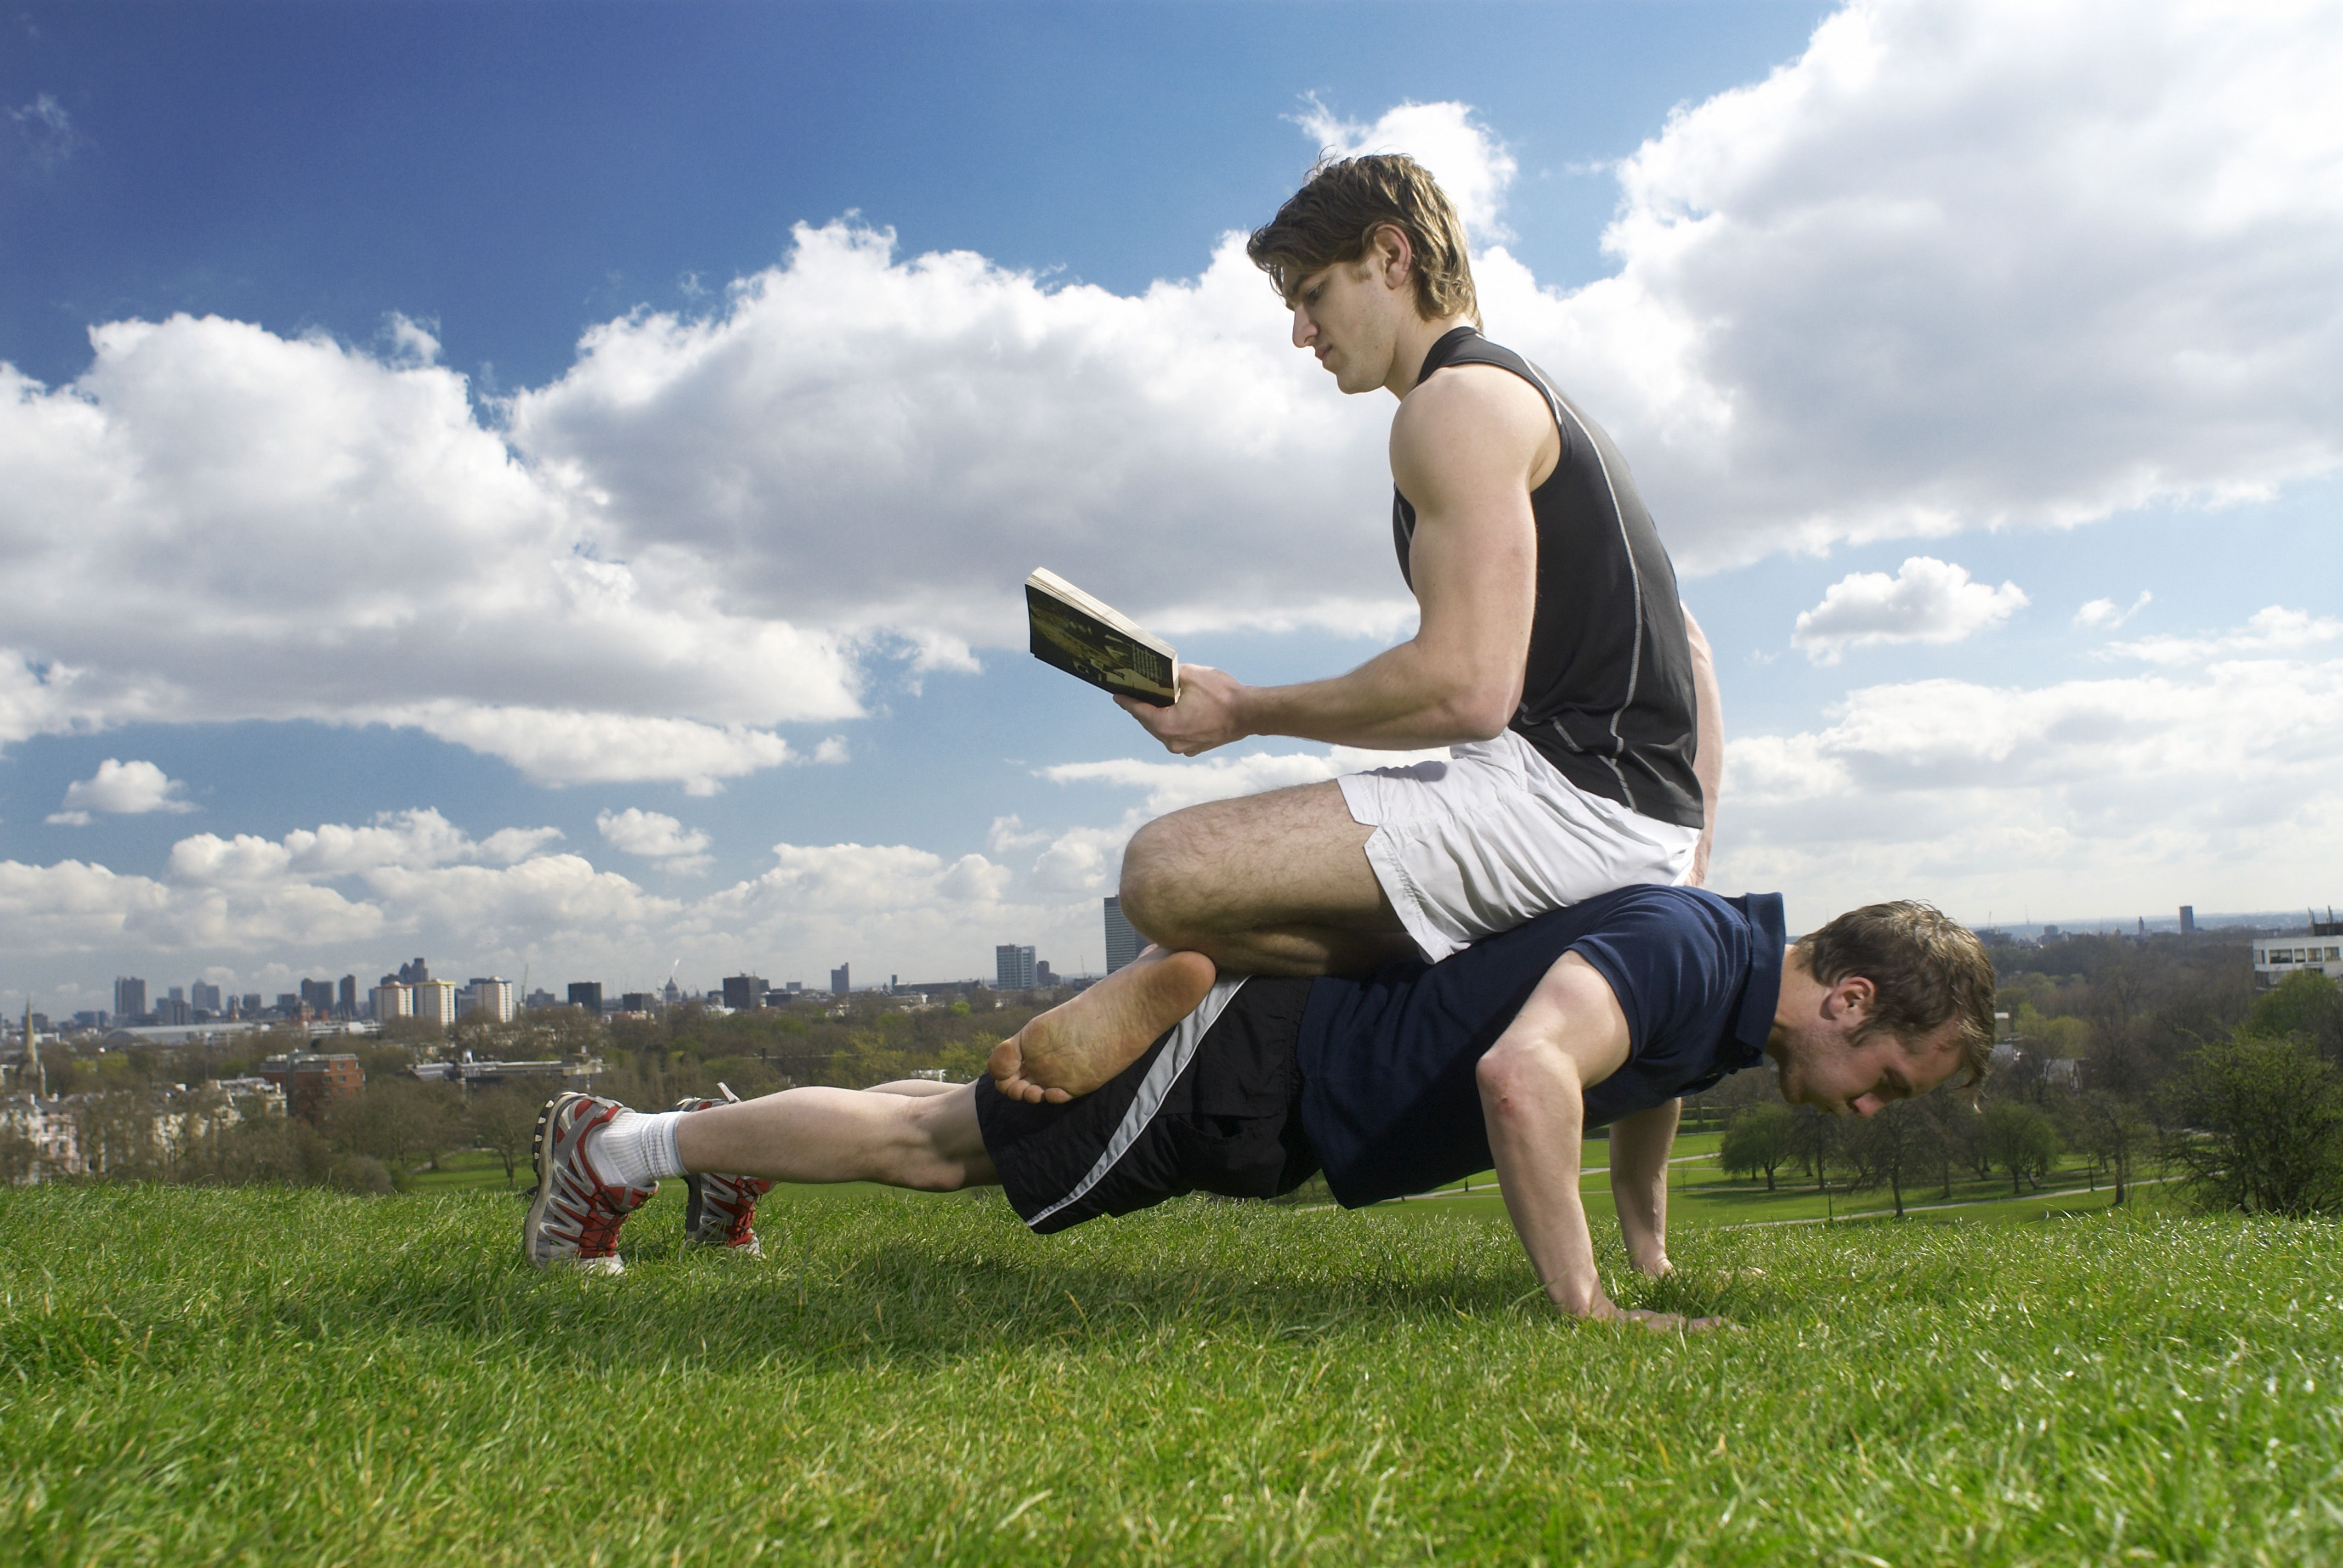 Read reviews and buy the best sports psychology books from